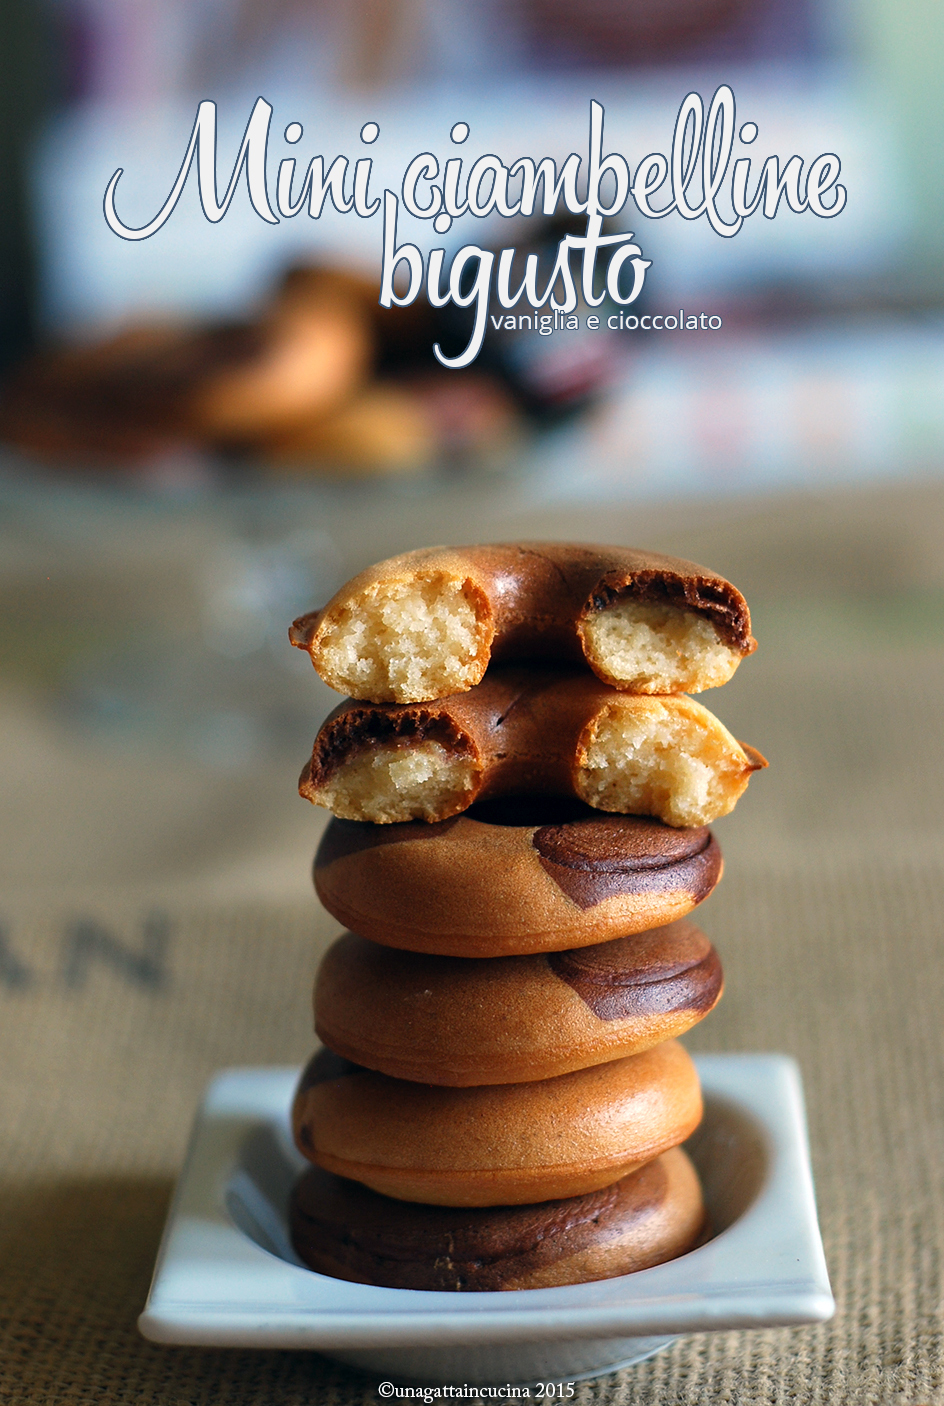 Mini ciambelline bigusto | Two flavors mini donuts